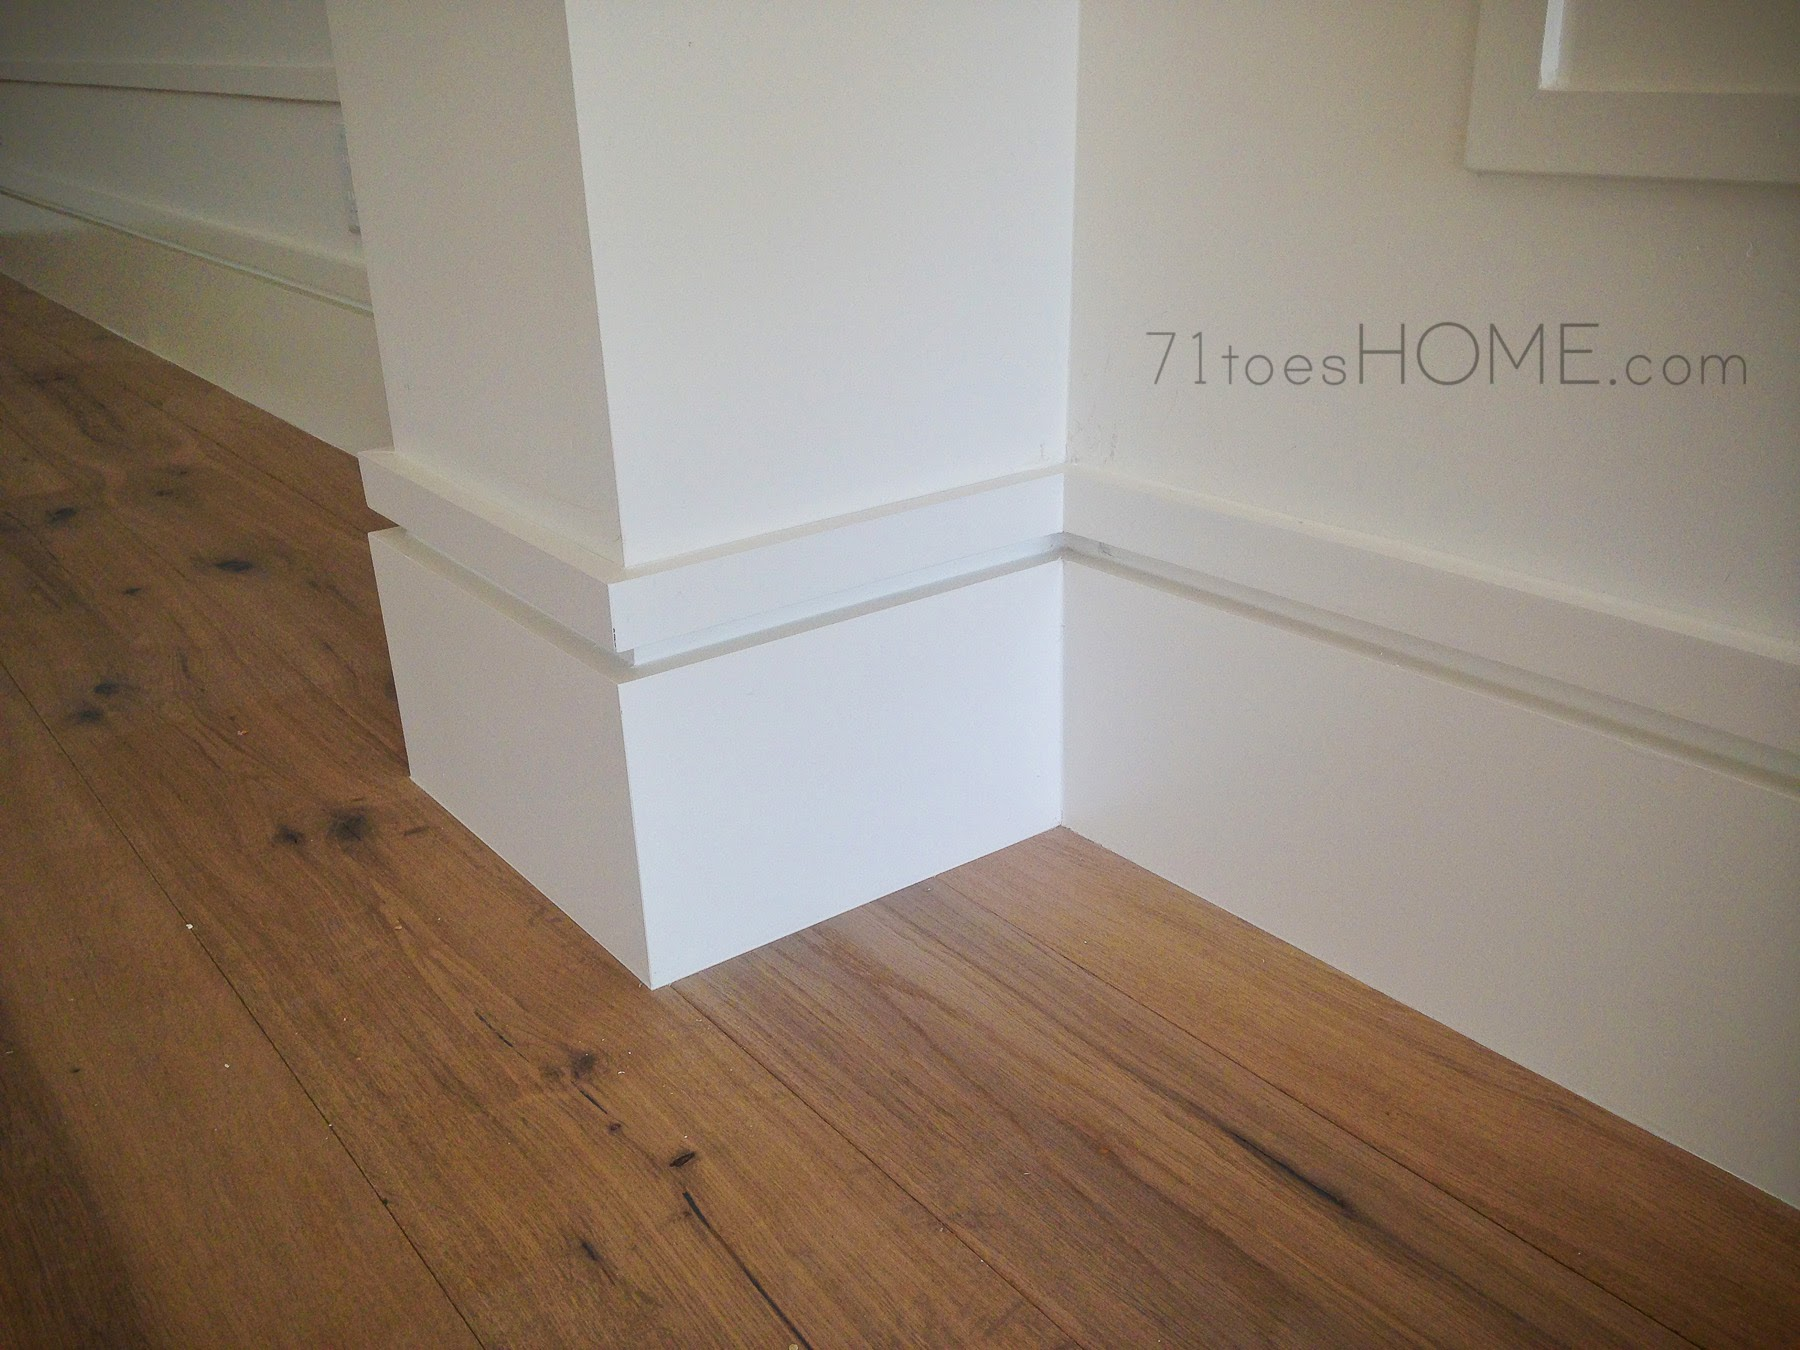 71toes h o m e february progress for Contemporary trim moulding